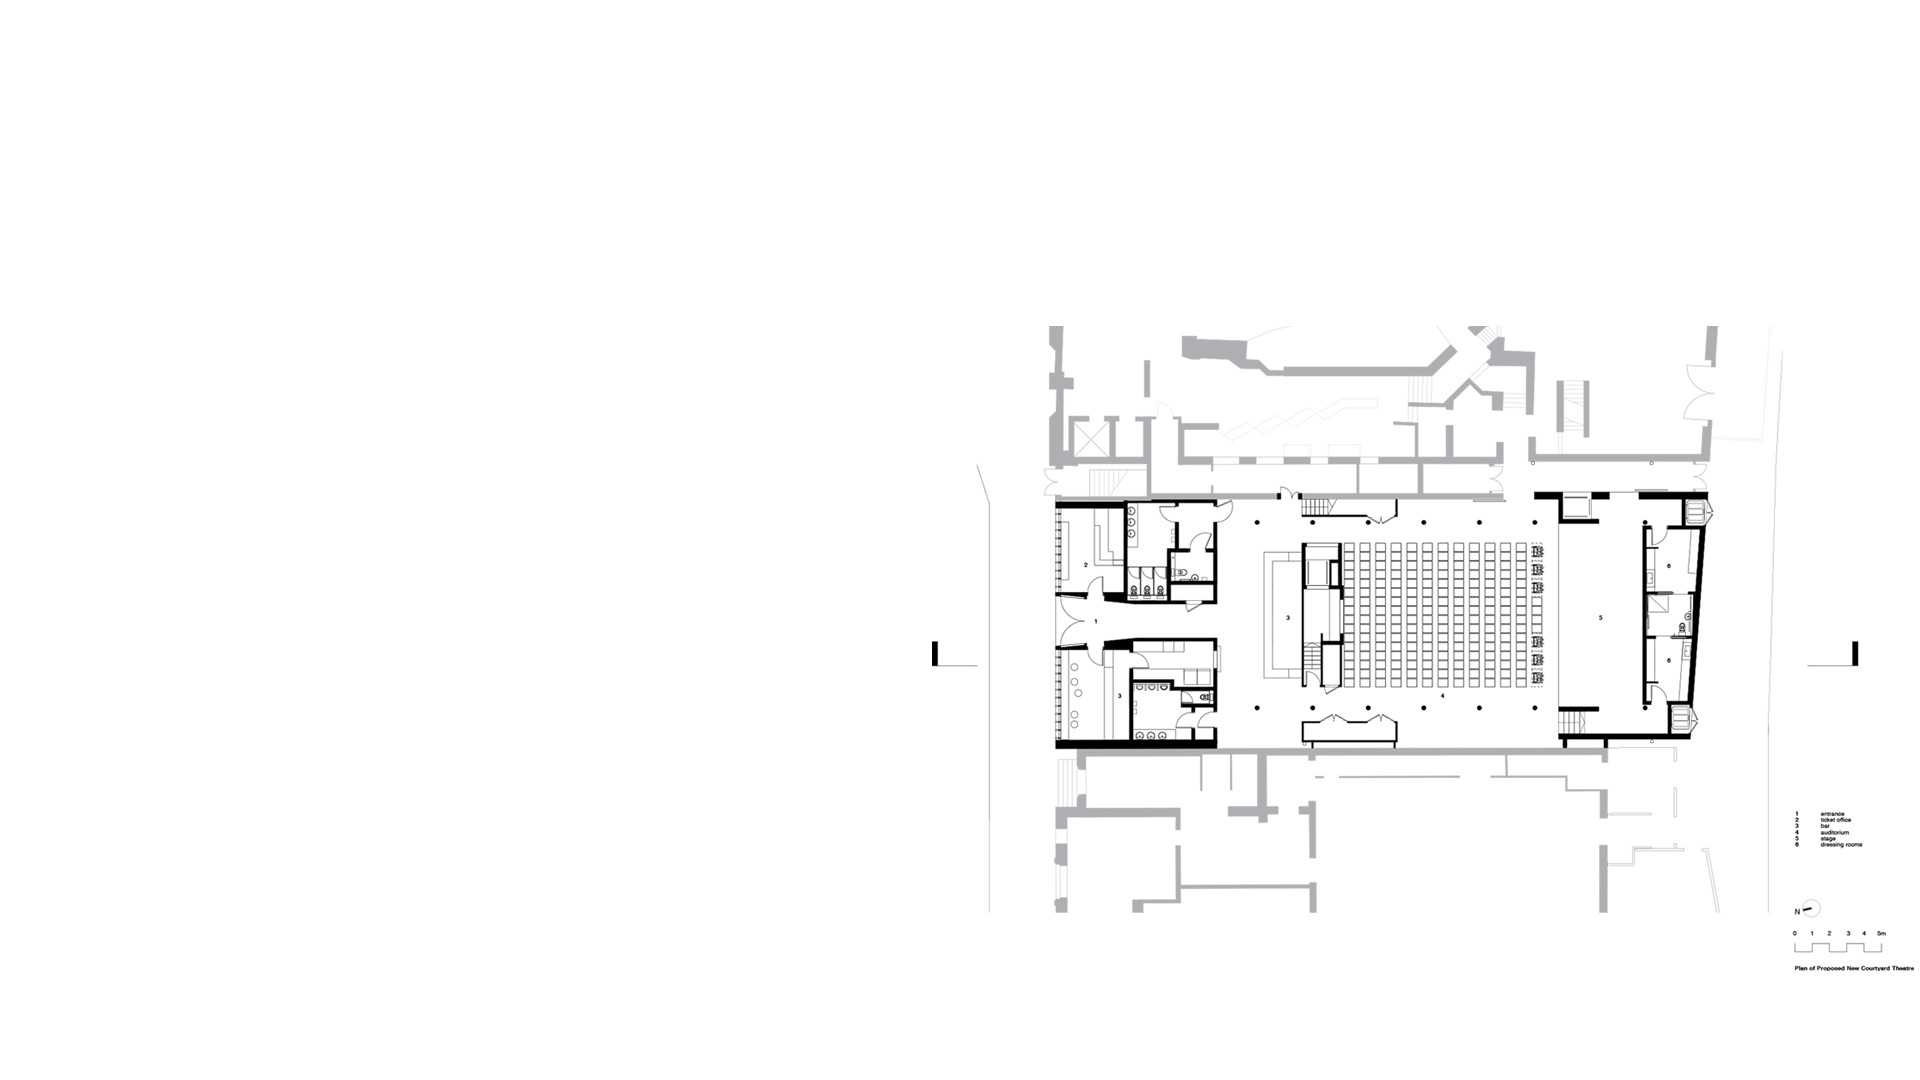 Plan of proposed temporary theatre at the Wolverhampton Grand